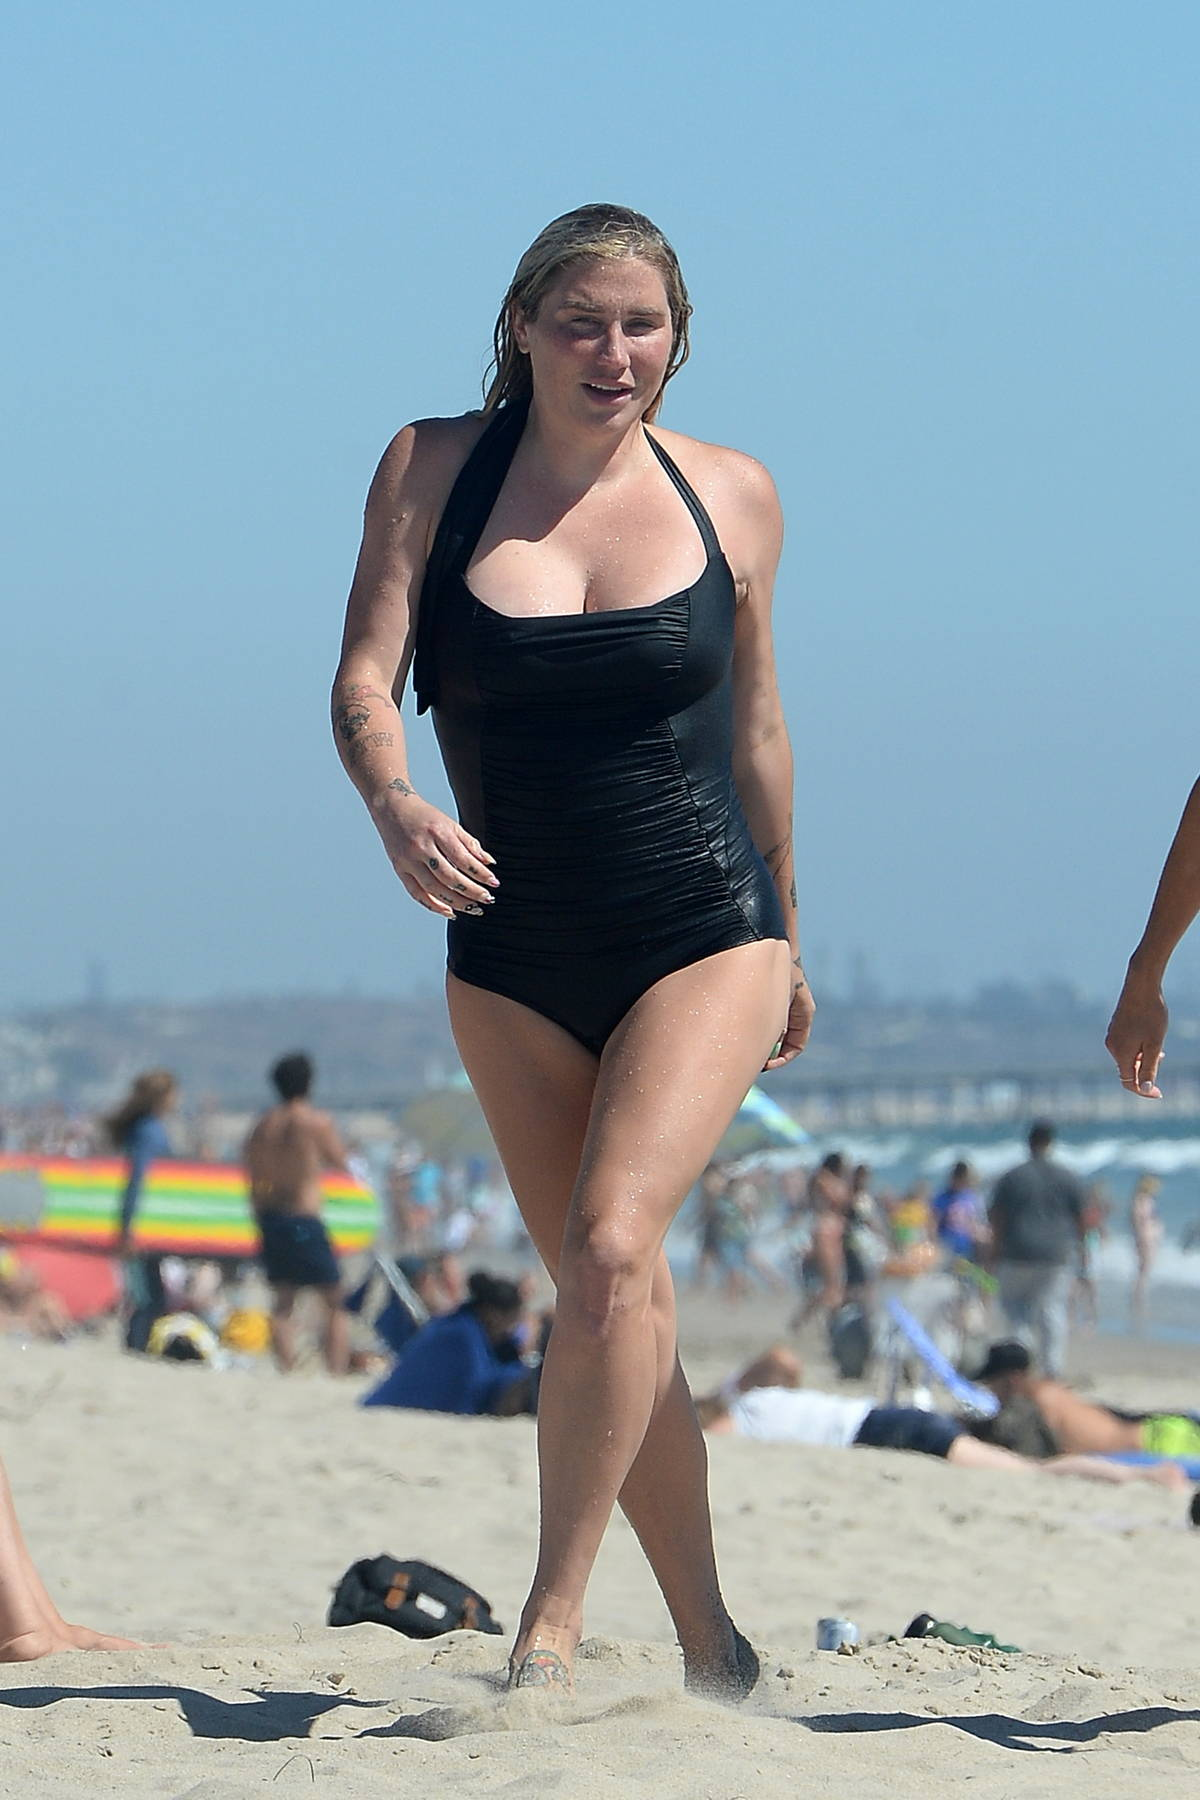 Kesha Sebert spotted in a black swimsuit as she hits the beach with friends in Los Angeles